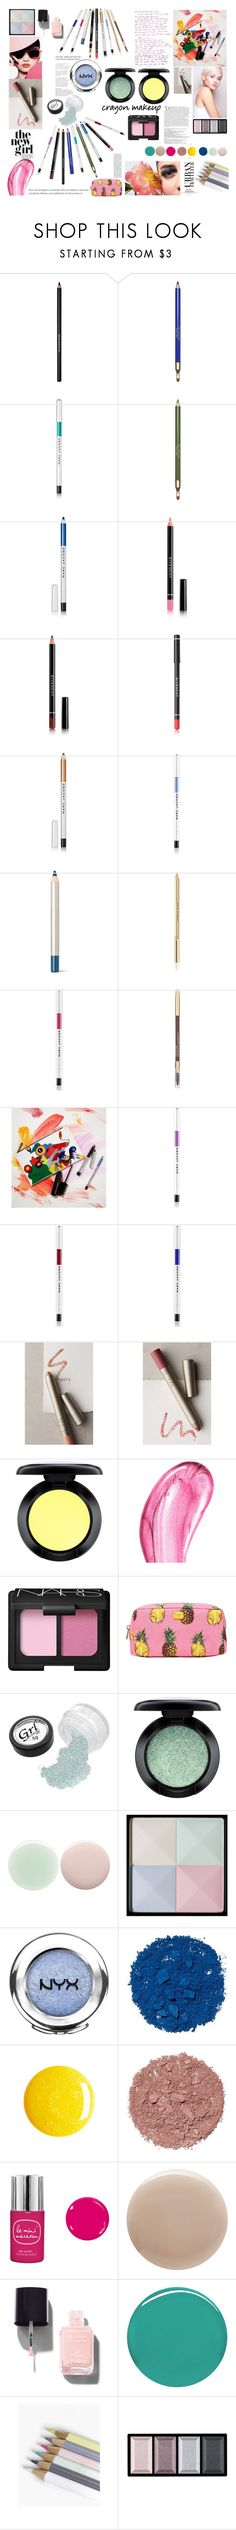 """Senza titolo #6014"" by waikiki24 ❤ liked on Polyvore featuring beauty, Lancôme, Clarins, Marc Jacobs, Givenchy, Christian Dior, Dolce&Gabbana, Ilia, MAC Cosmetics and Chantecaille"